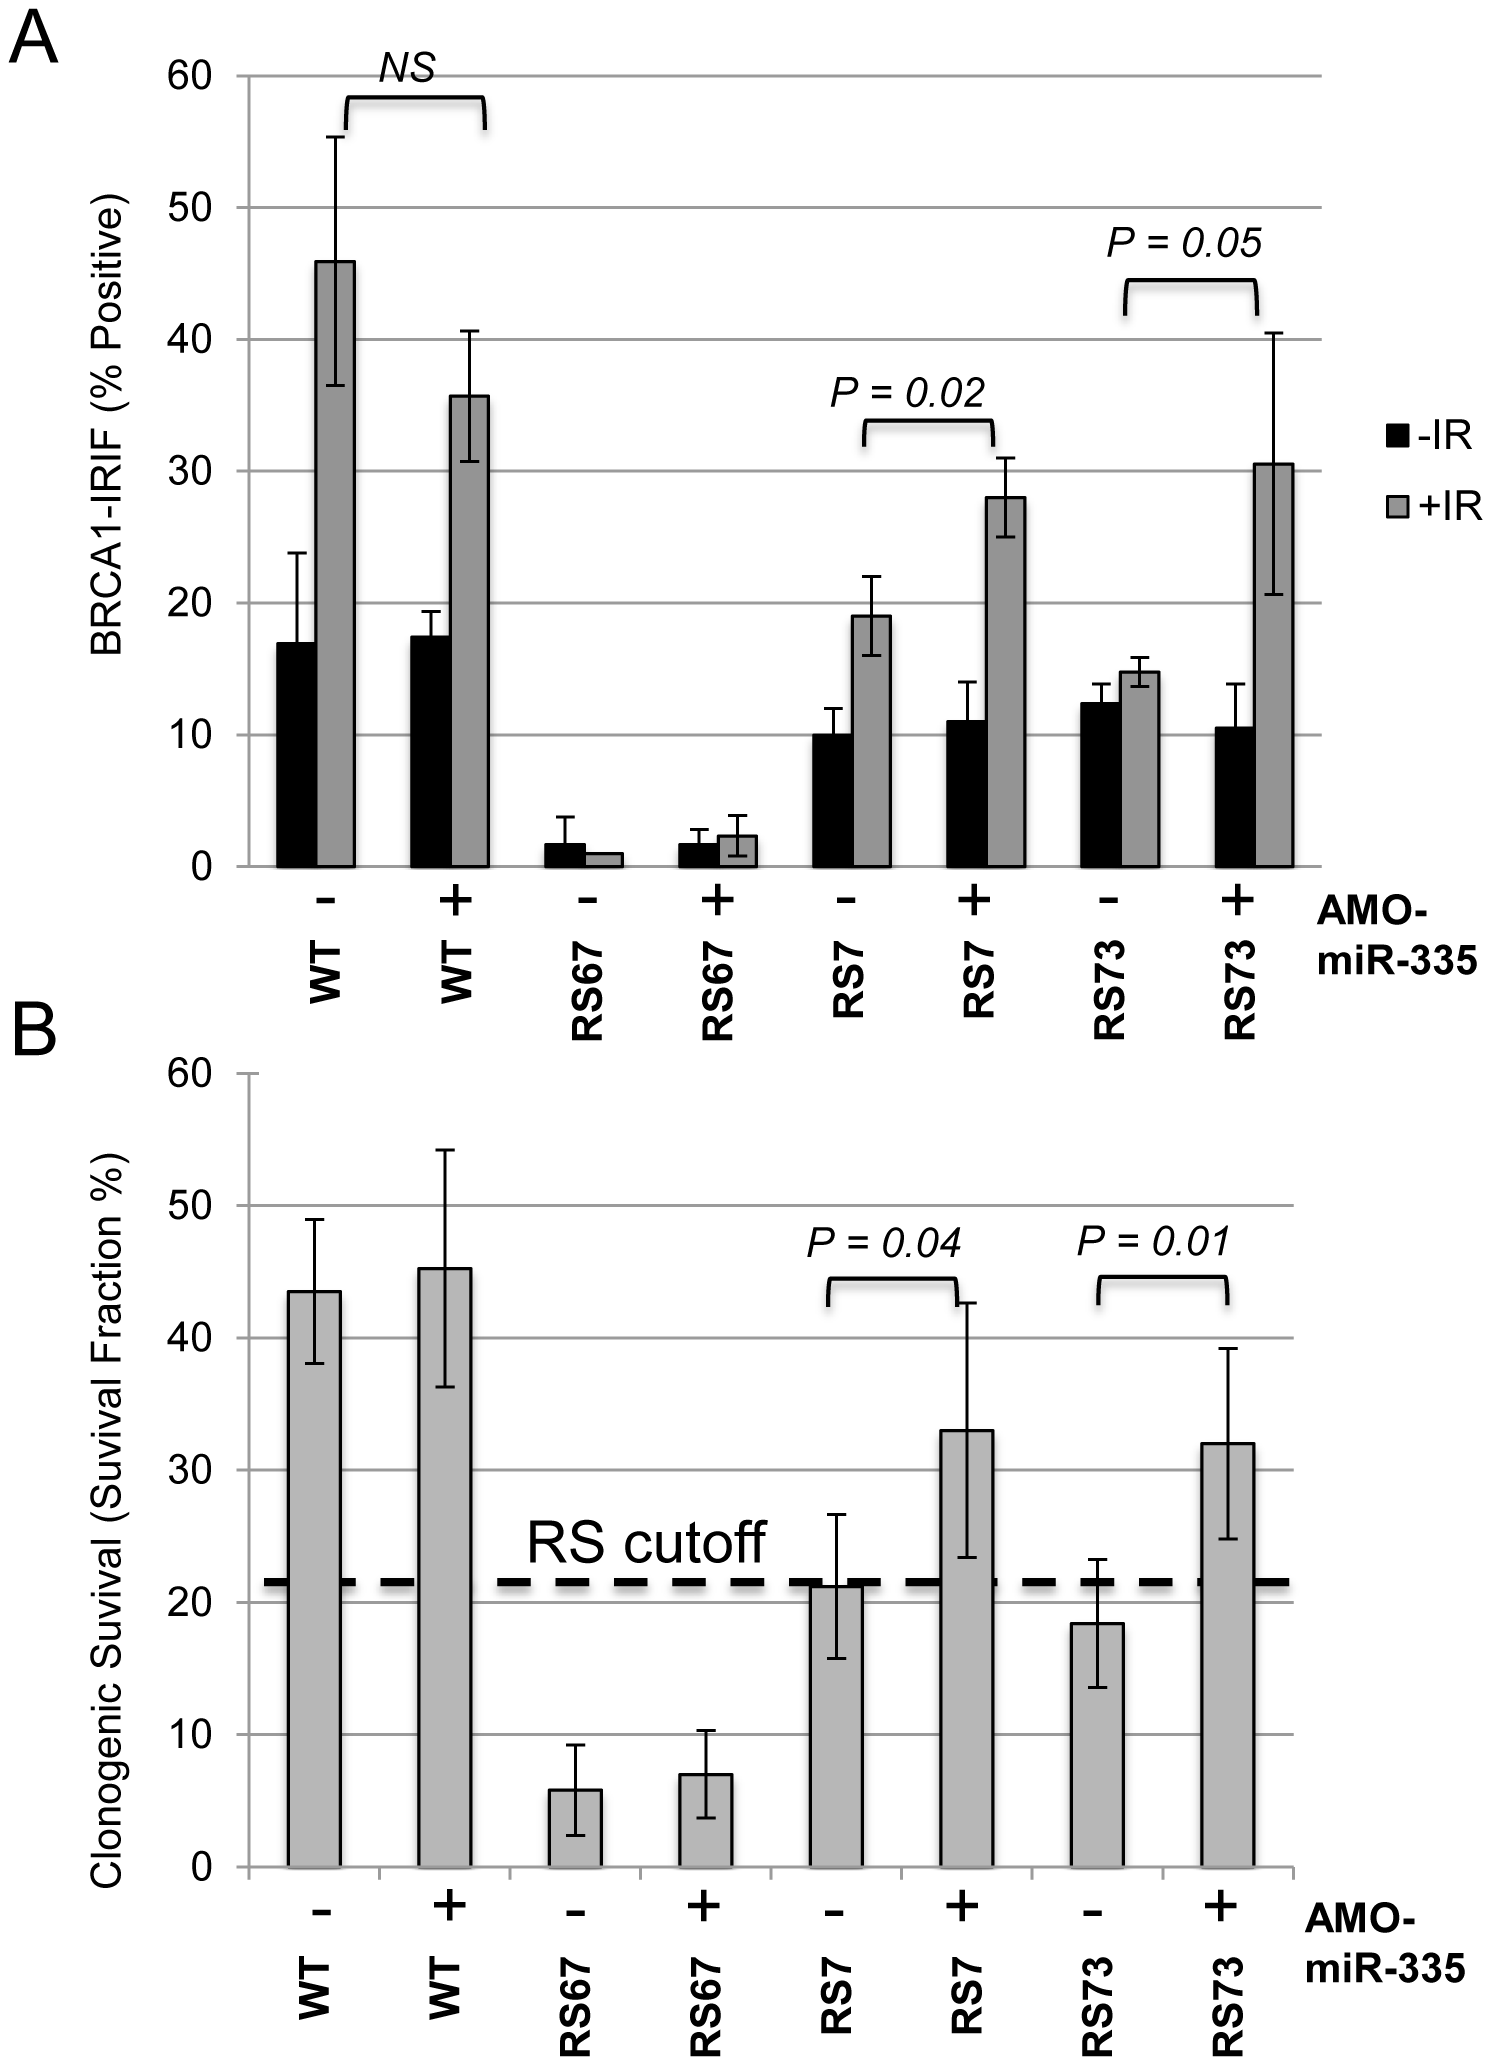 MiR335-induced DDR defects were abrogated in RS7 and RS73 after AMO-miR-335 treatment.